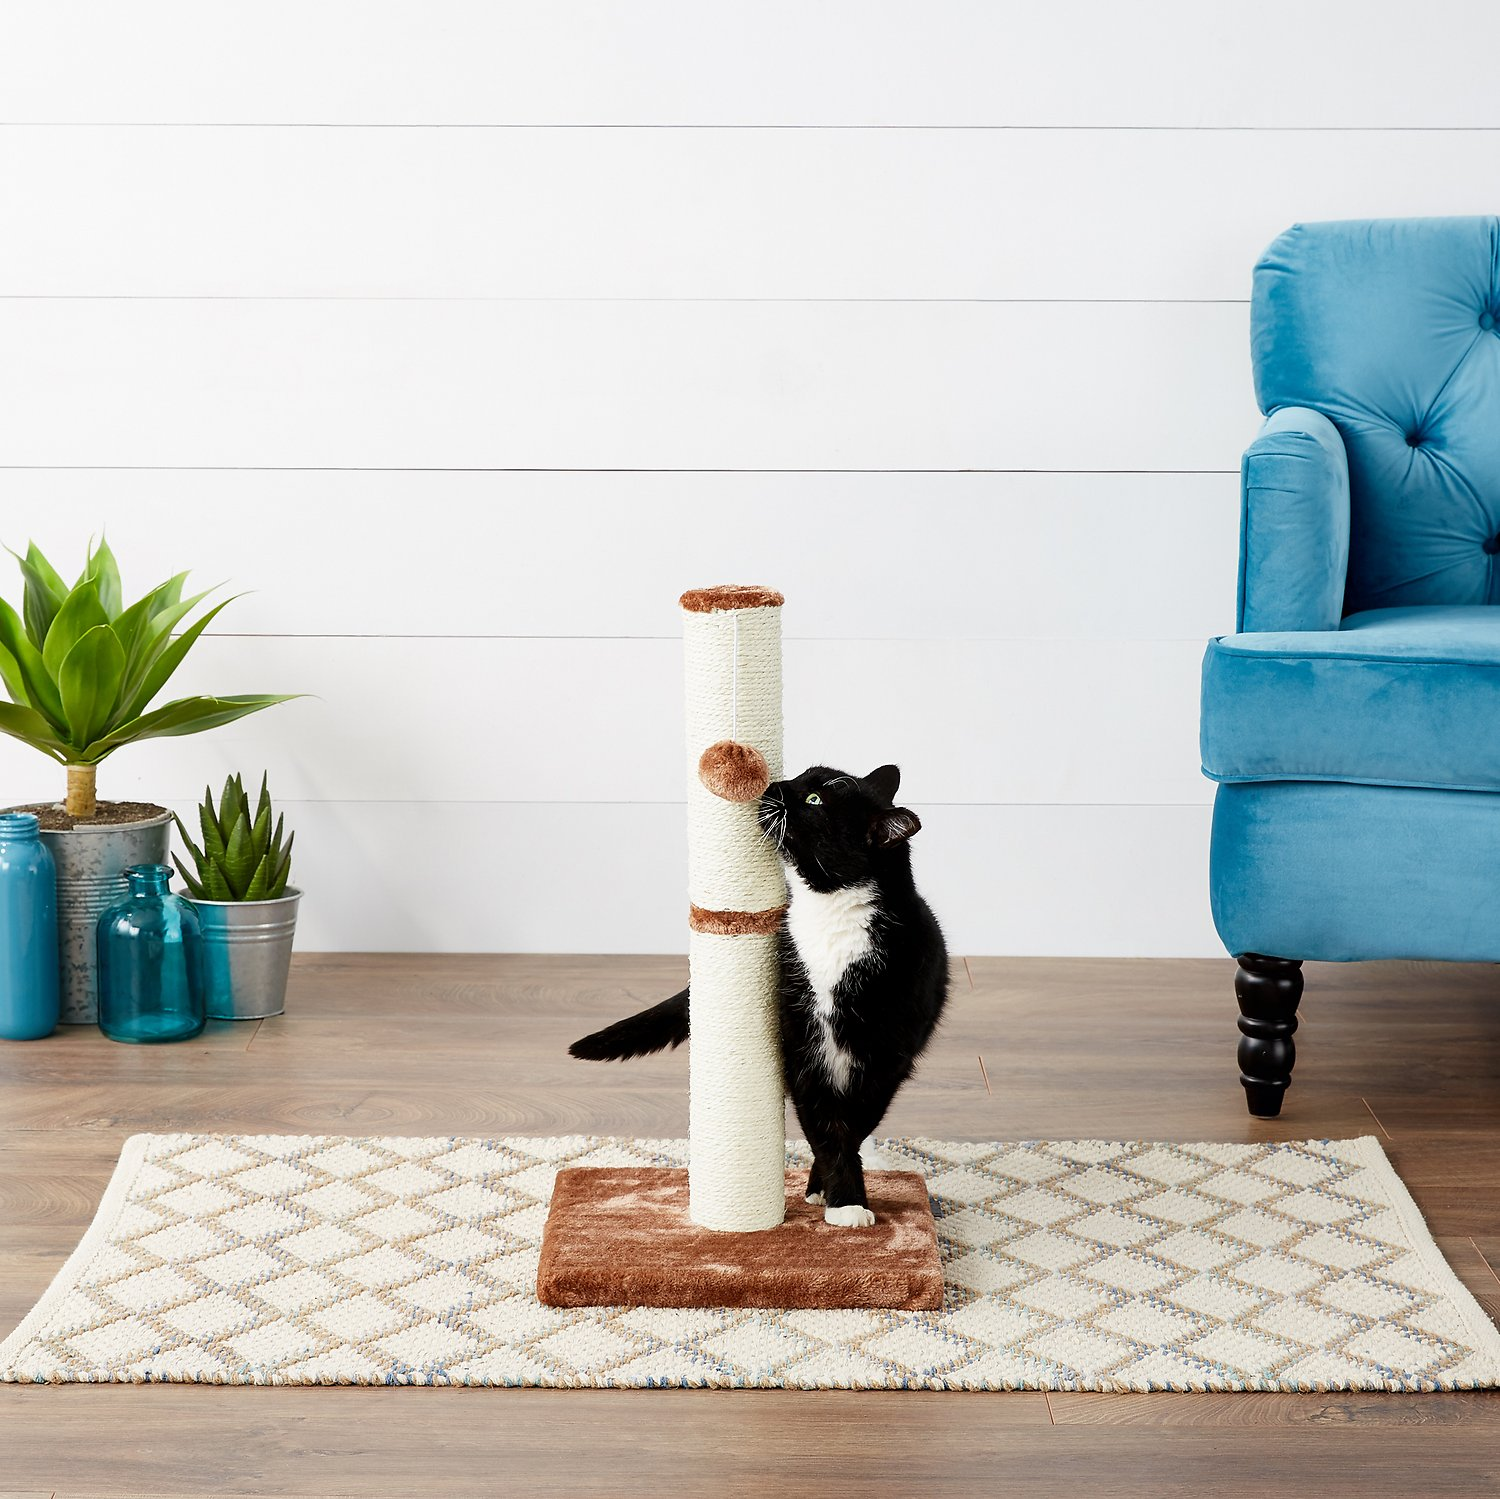 Discussion on this topic: Frisco 21-in Cat Scratching Post with Toy, , frisco-21-in-cat-scratching-post-with-toy/